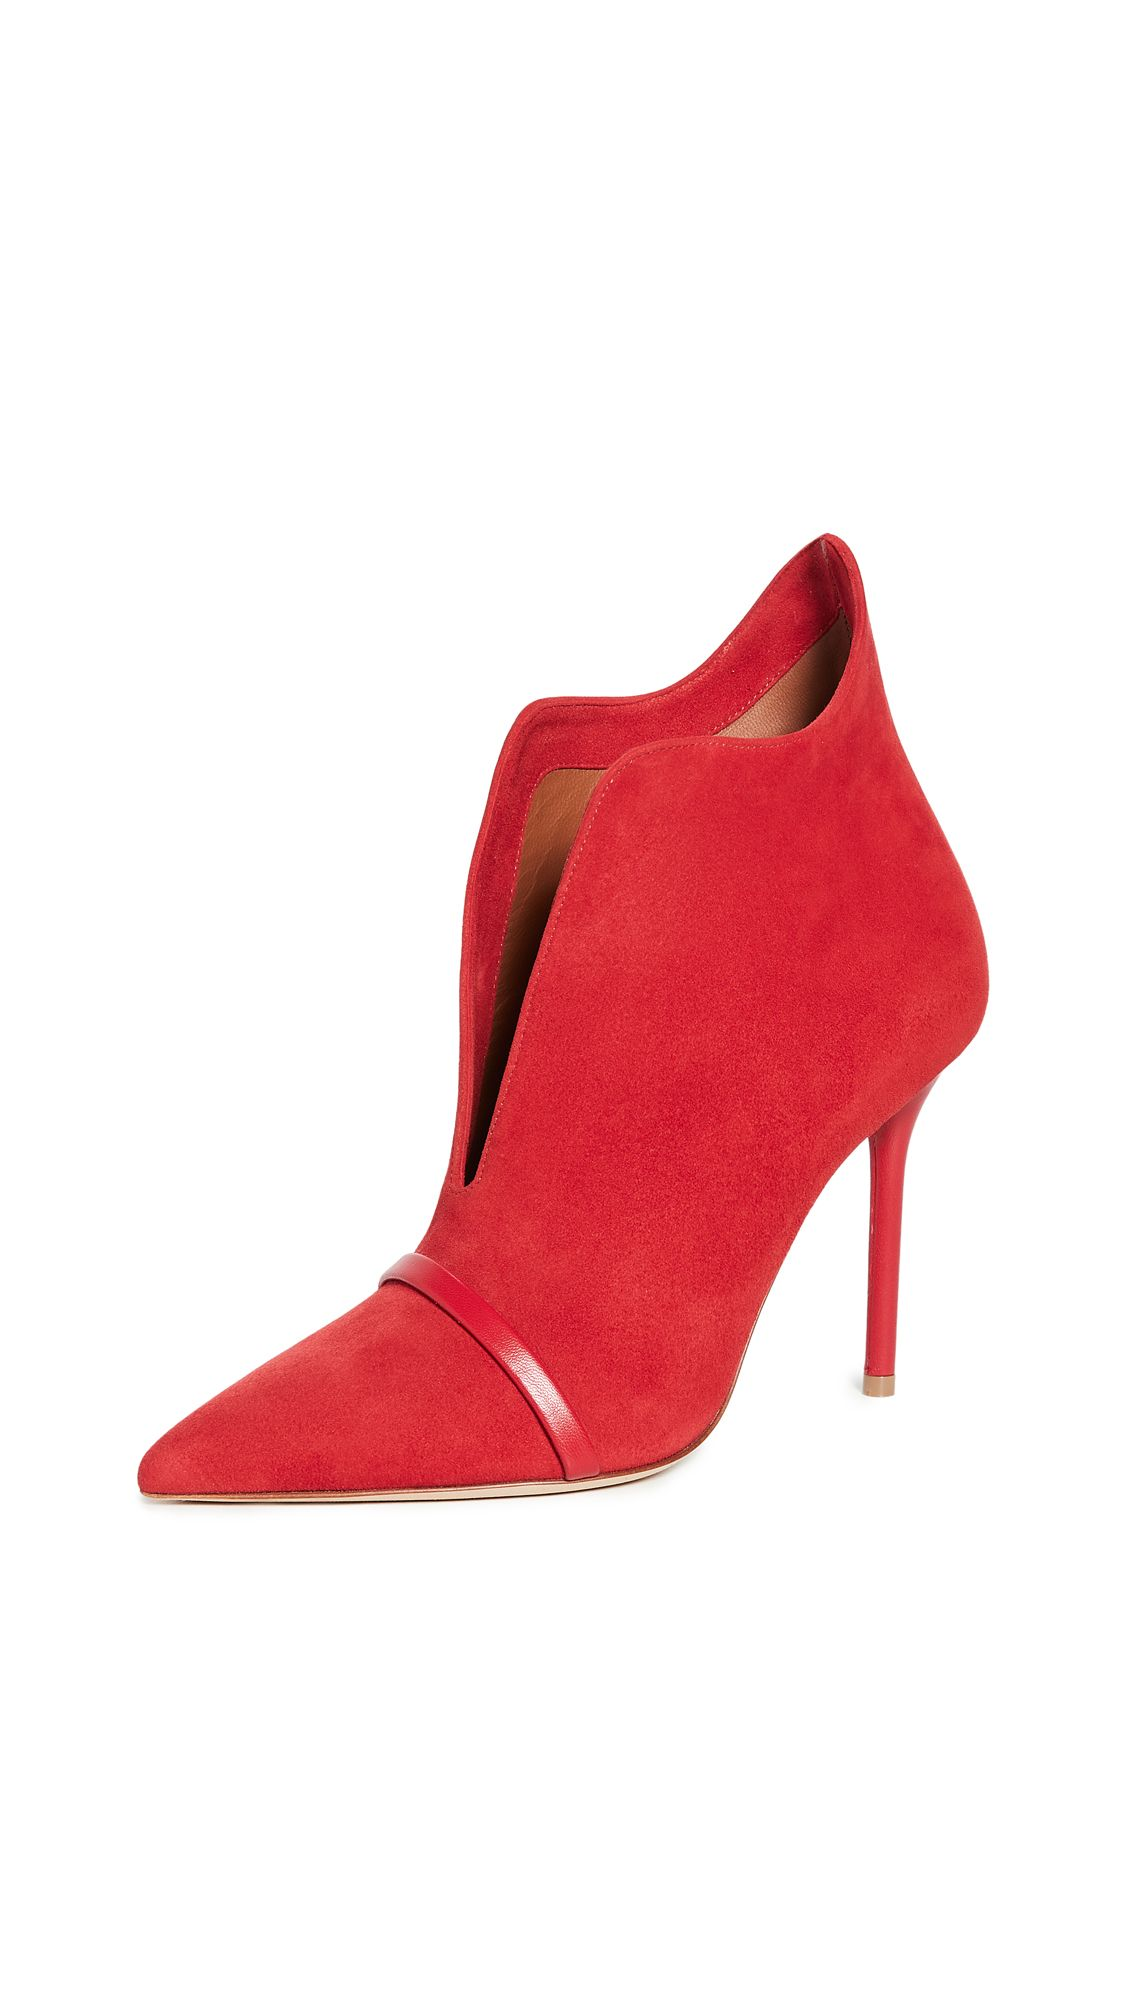 Cora Ms 100 High Heels Ankle Boots In Red Suede High Heel Boots Ankle Malone Souliers Suede Leather Boots